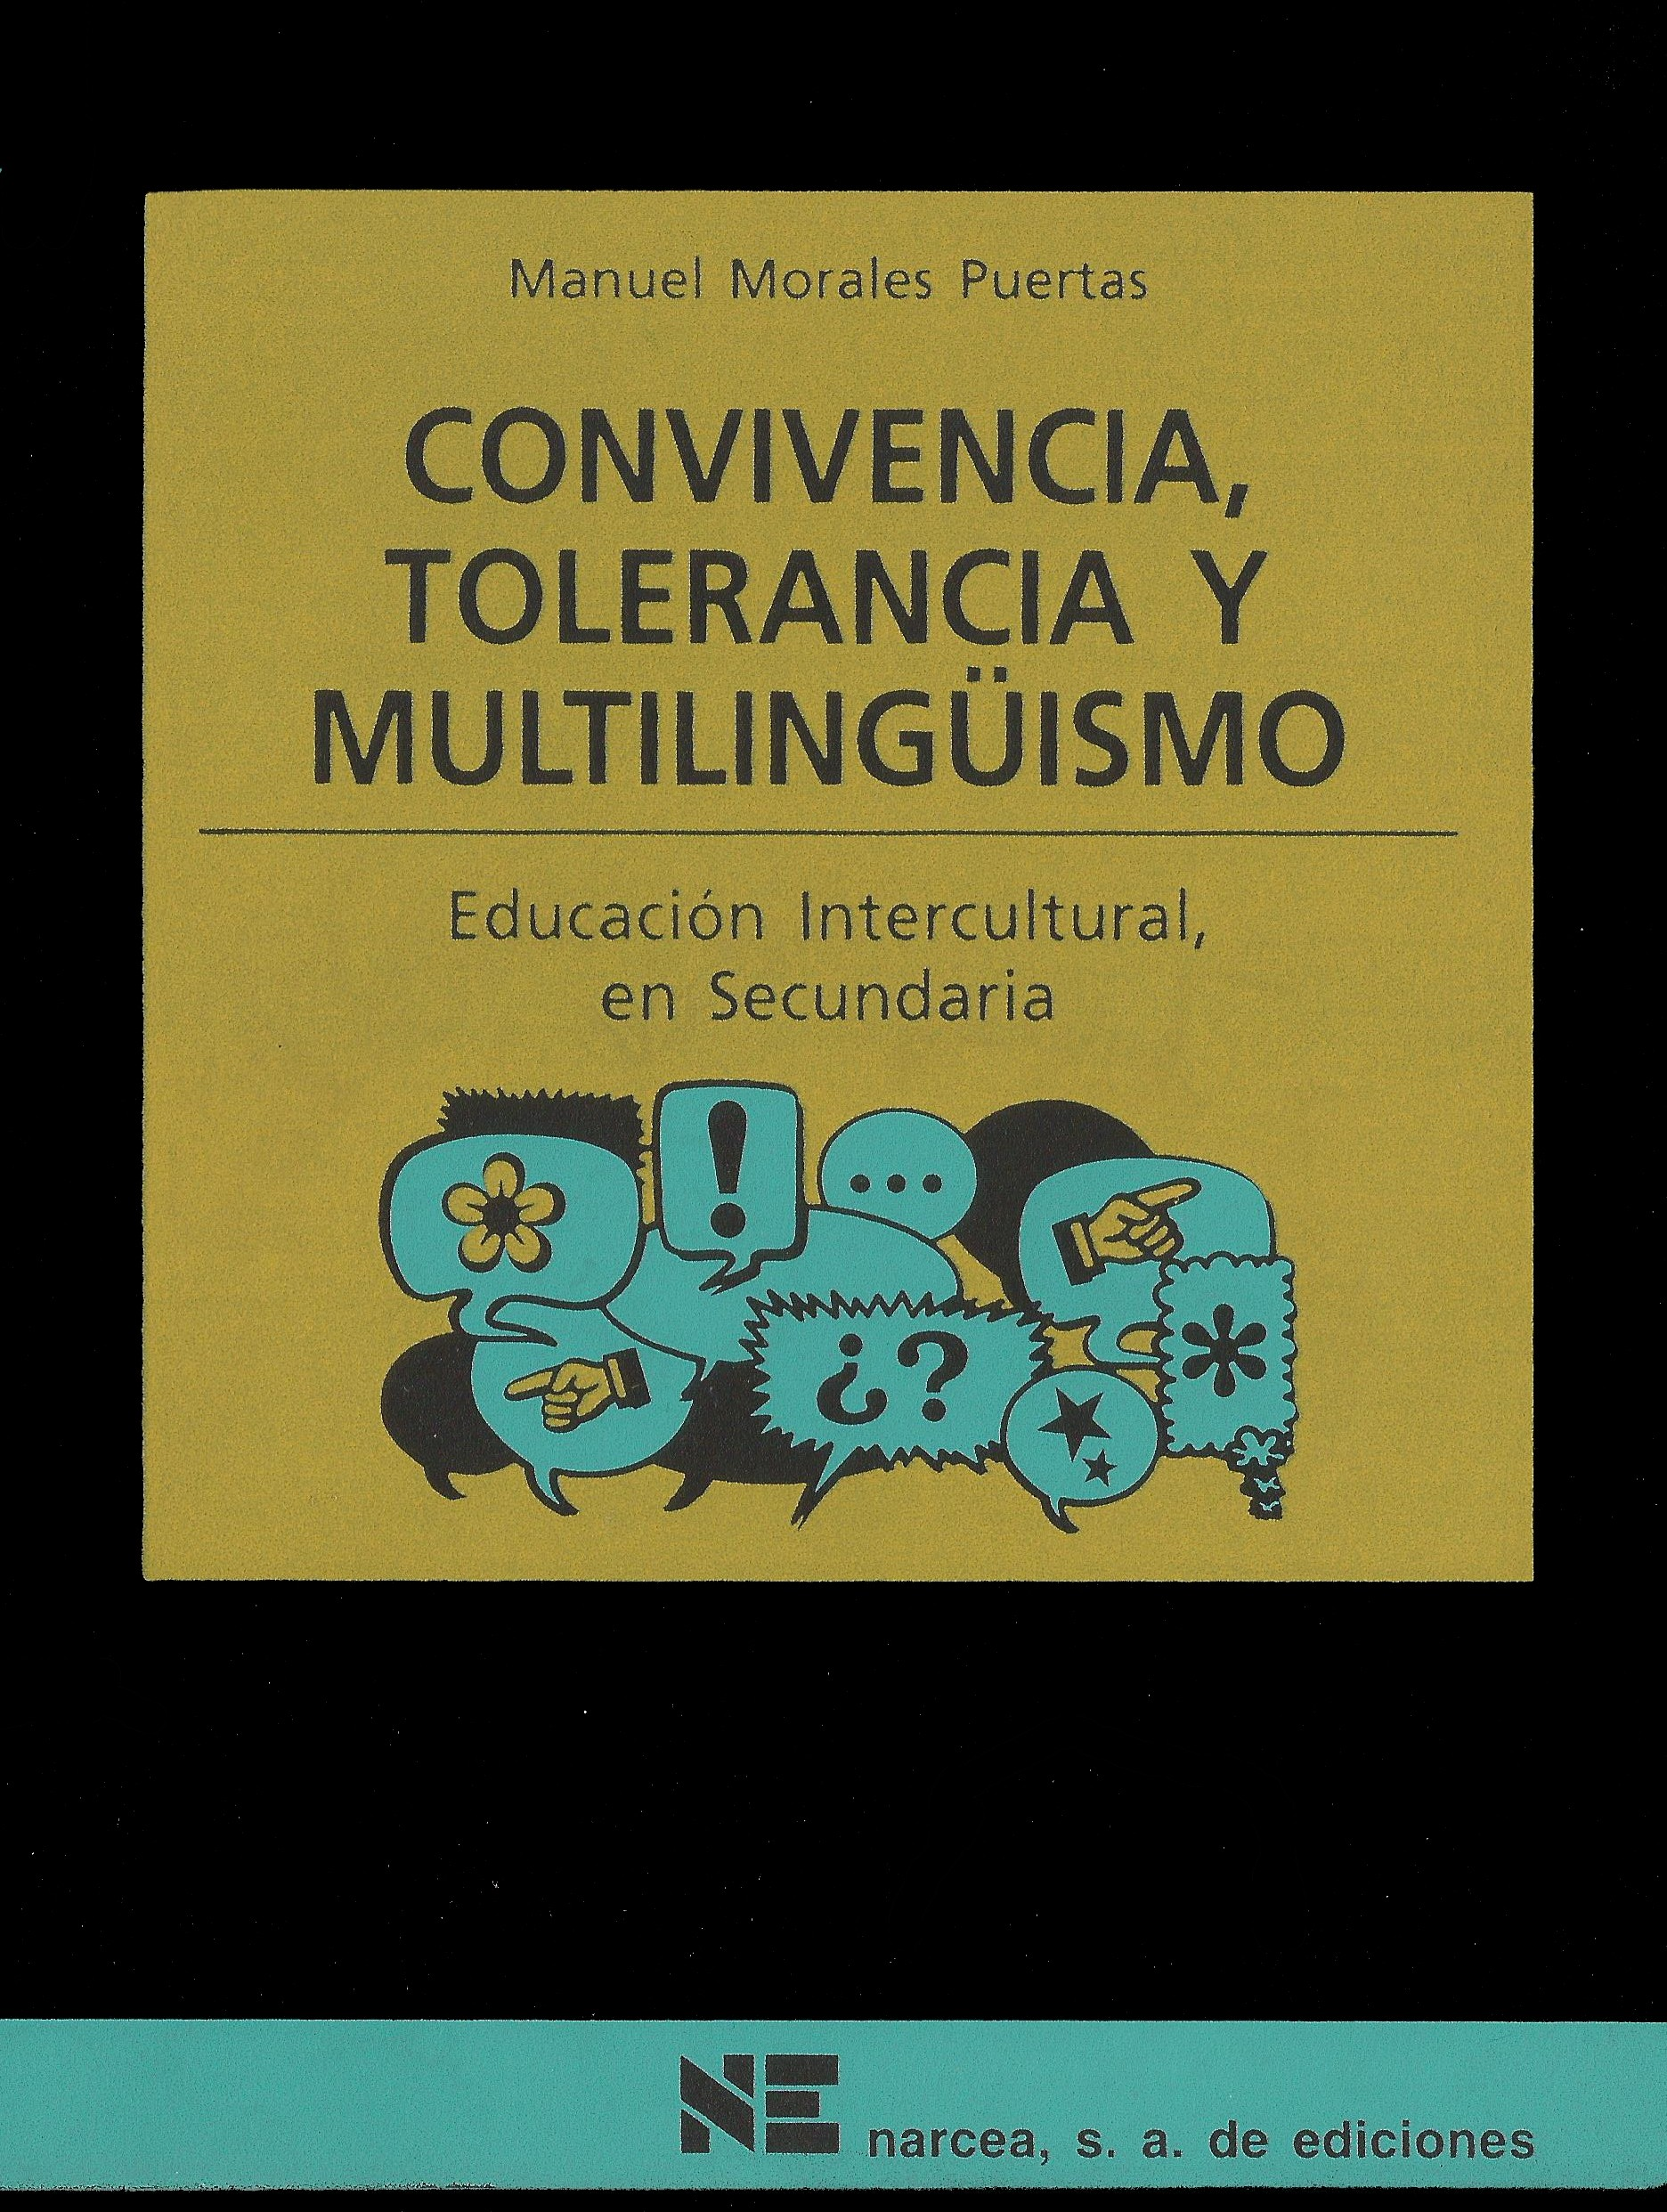 Convivencia, tolerancia y multilingüismo